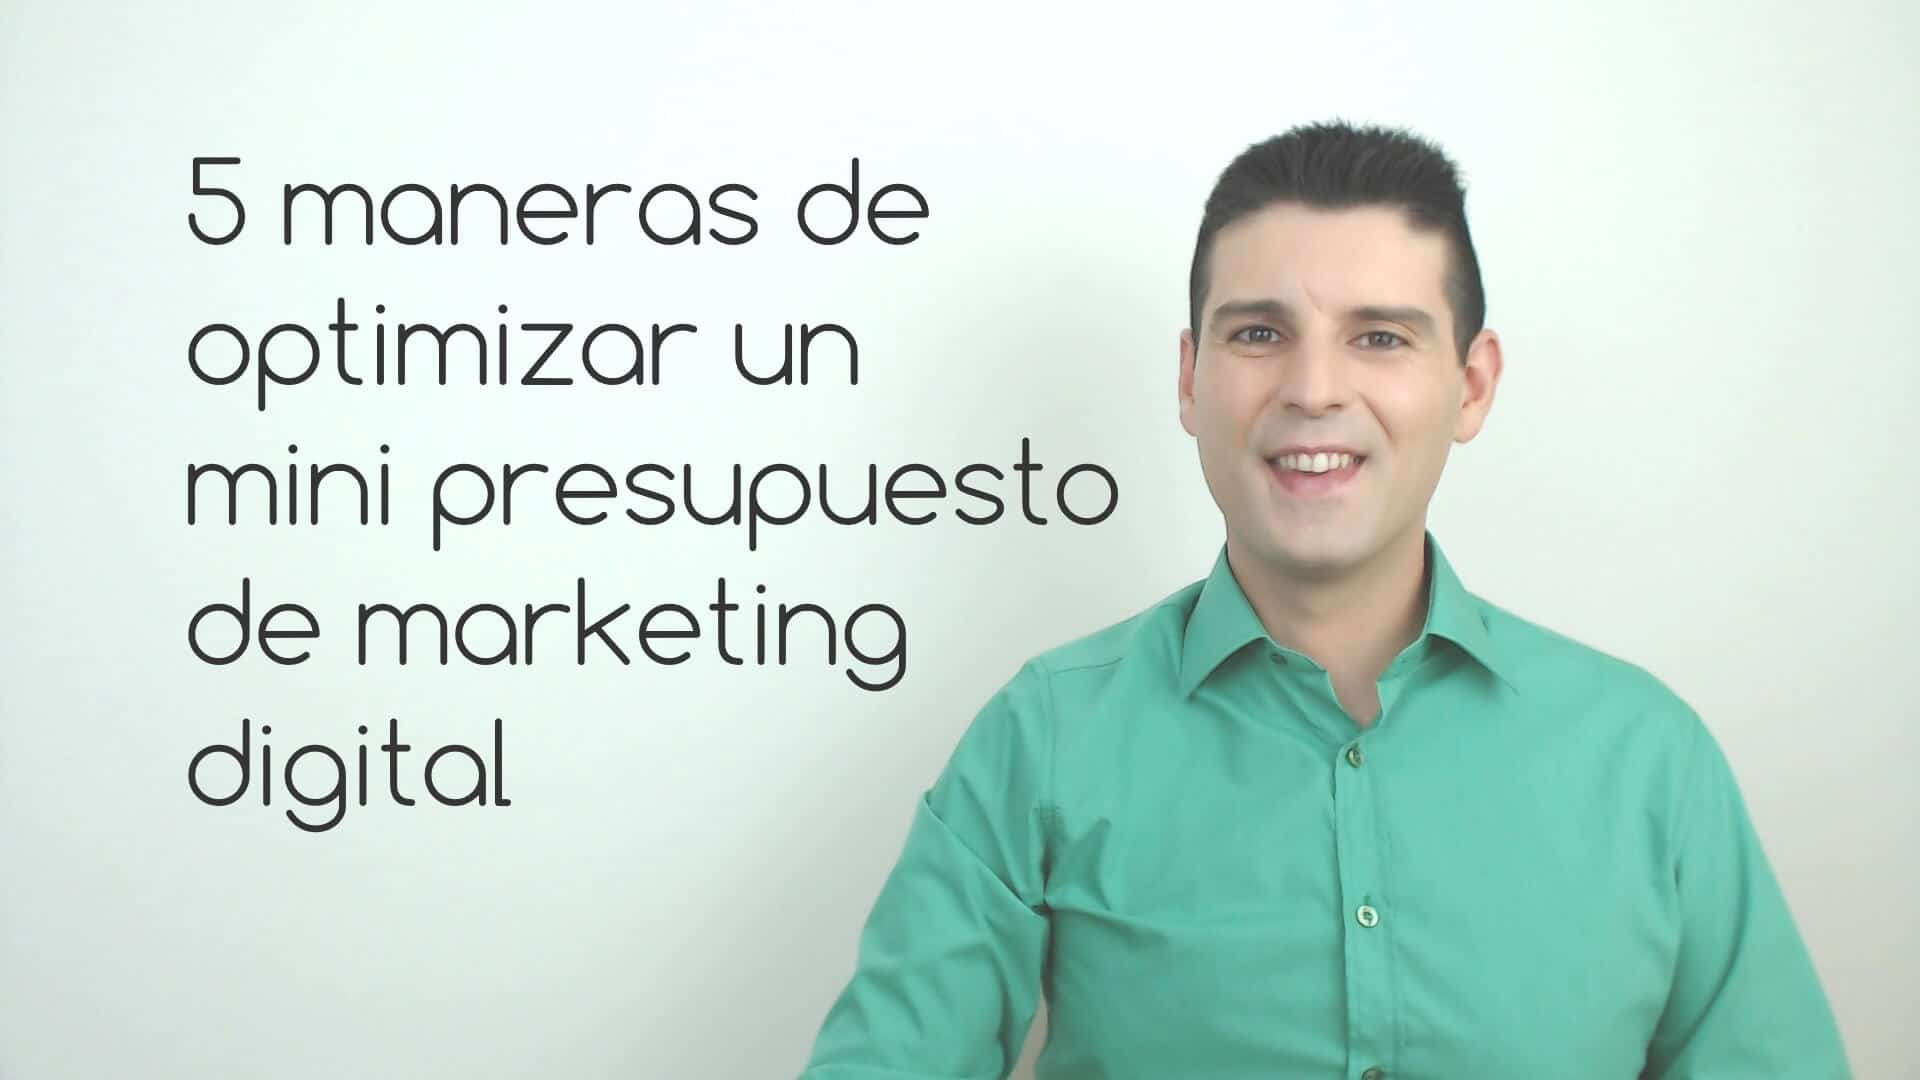 5 maneras de optimizar un mini presupuesto de marketing digital